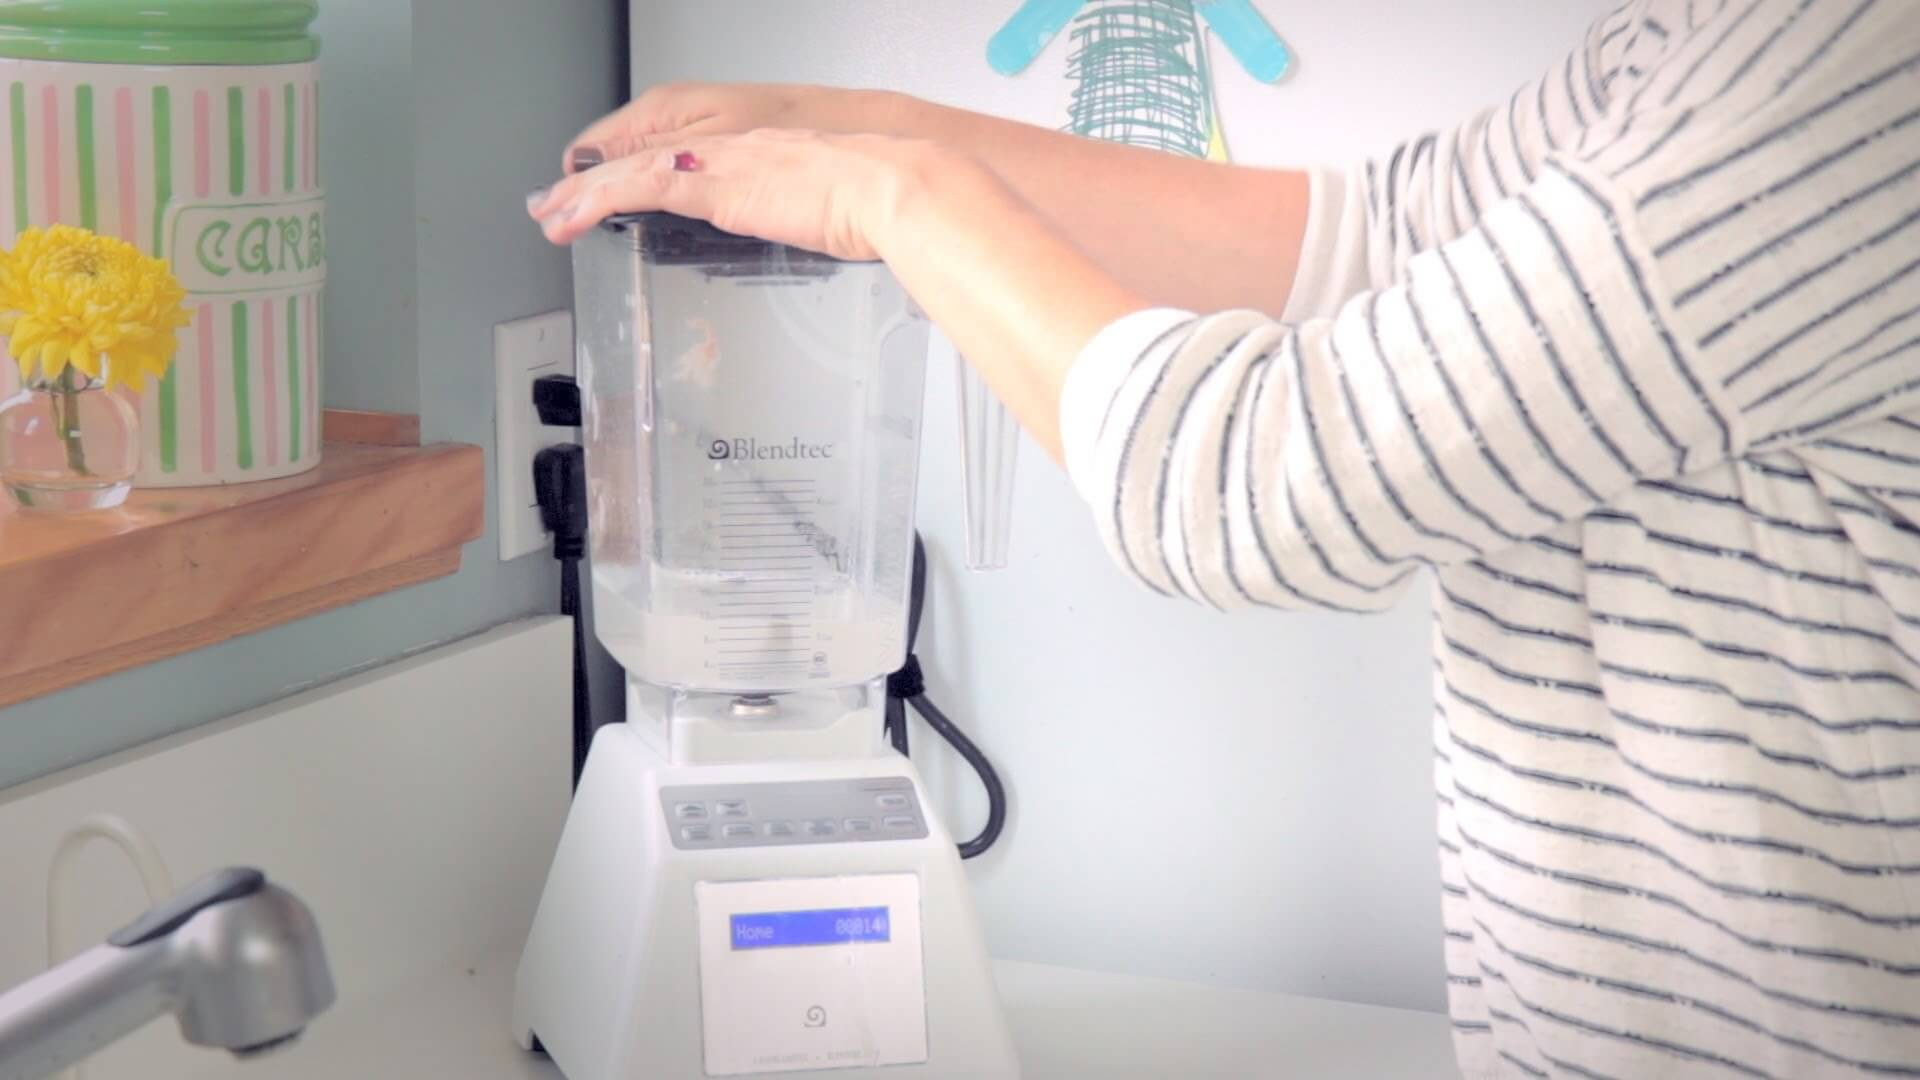 How to clean a blender the safe way